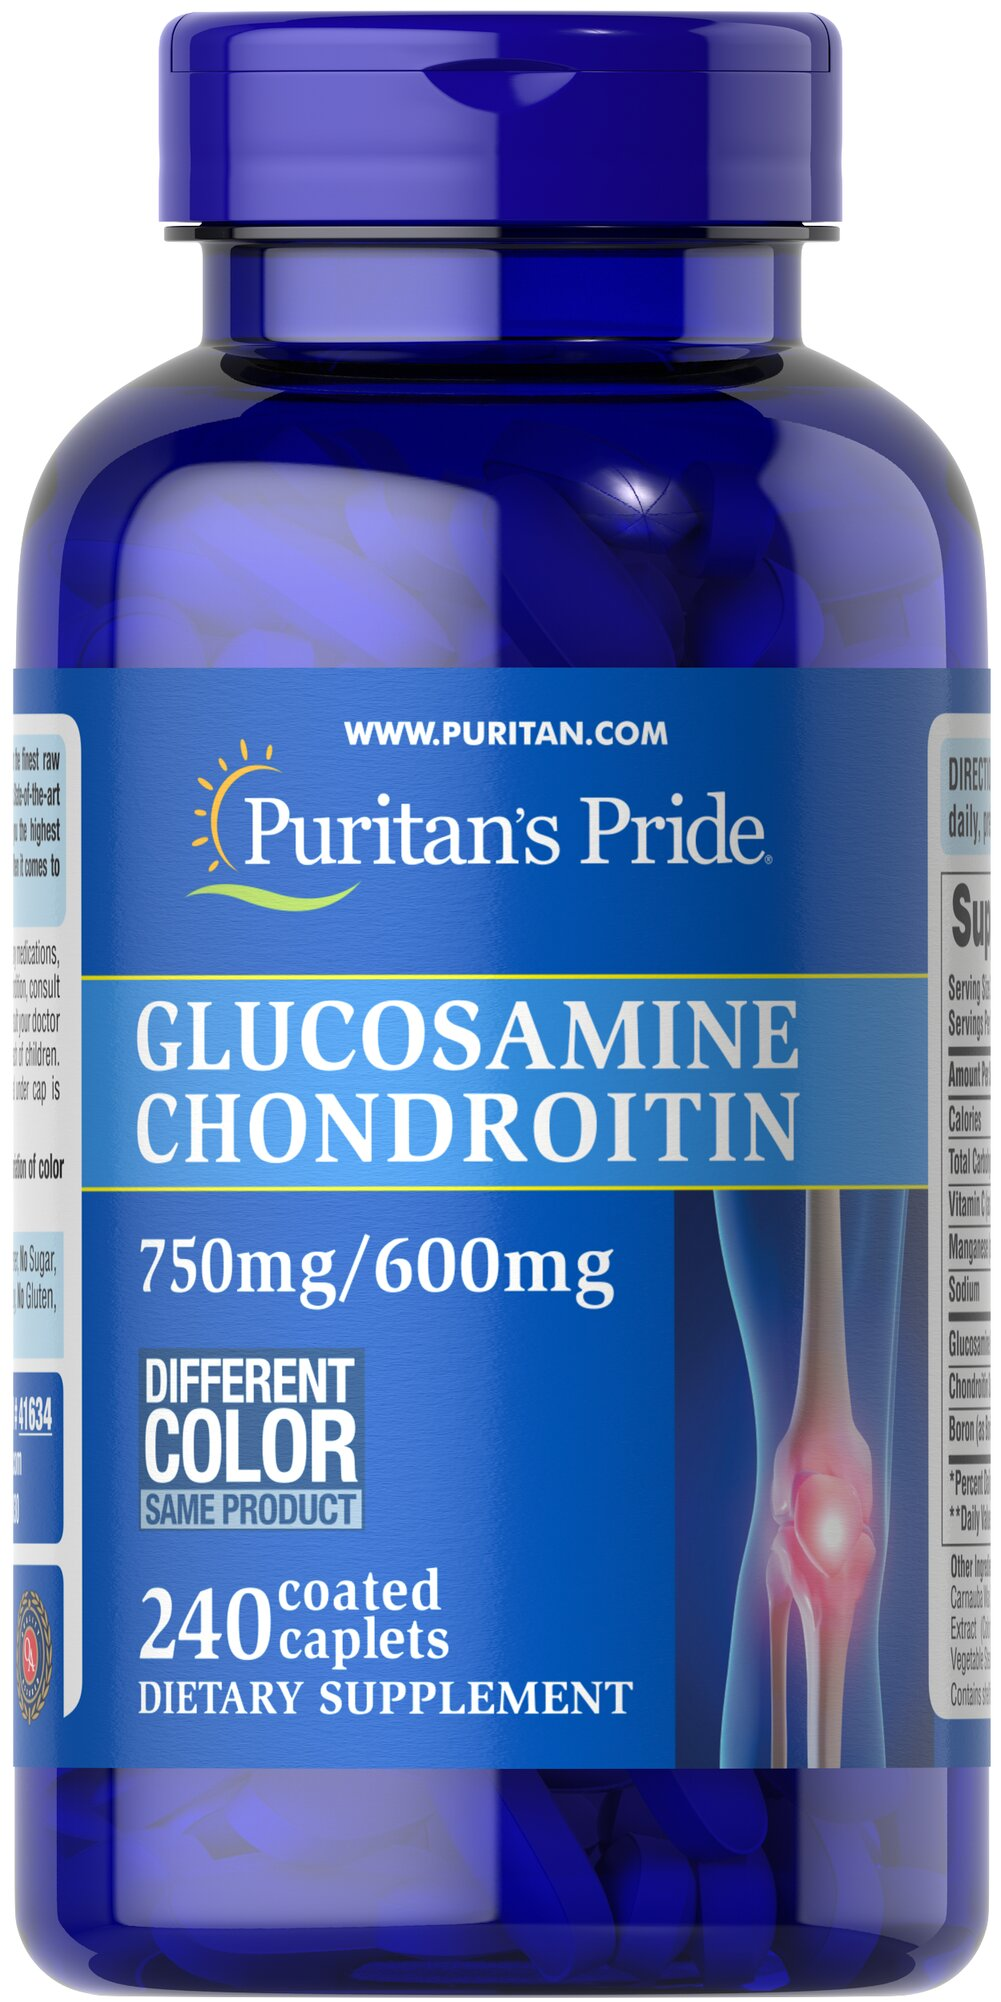 Triple Strength Glucosamine Chondroitin 750 mg/600 mg <p>Glucosamine is a key structural component in cartilage and acts as a lubricant**</p><p>Chondroitin acts as a lubricant and is an important molecular component of glycosaminoglycans**</p><p>One serving of Triple Strength Glucosamine Chondroitin helps promote comfortable joint movement and two caplets provide 1500 mg Glucosamine and 1200 mg Chondroitin.</p> 240 Caplets 750 mg/600 mg $86.99